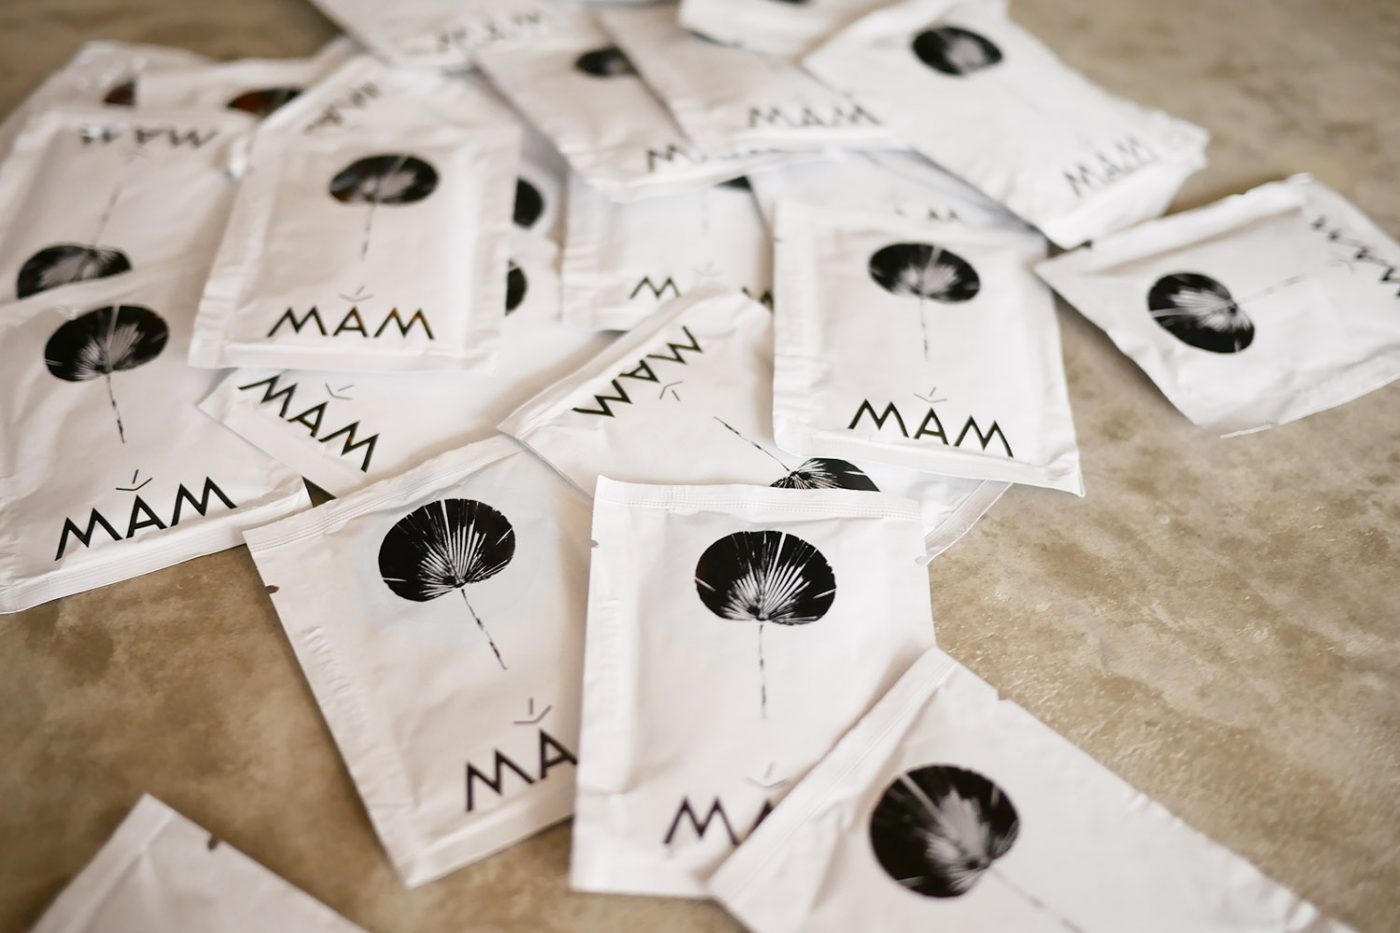 Mam_Restaurant_bar_Design_details_interior_branding_hand_wipes_logo_identity_graphics